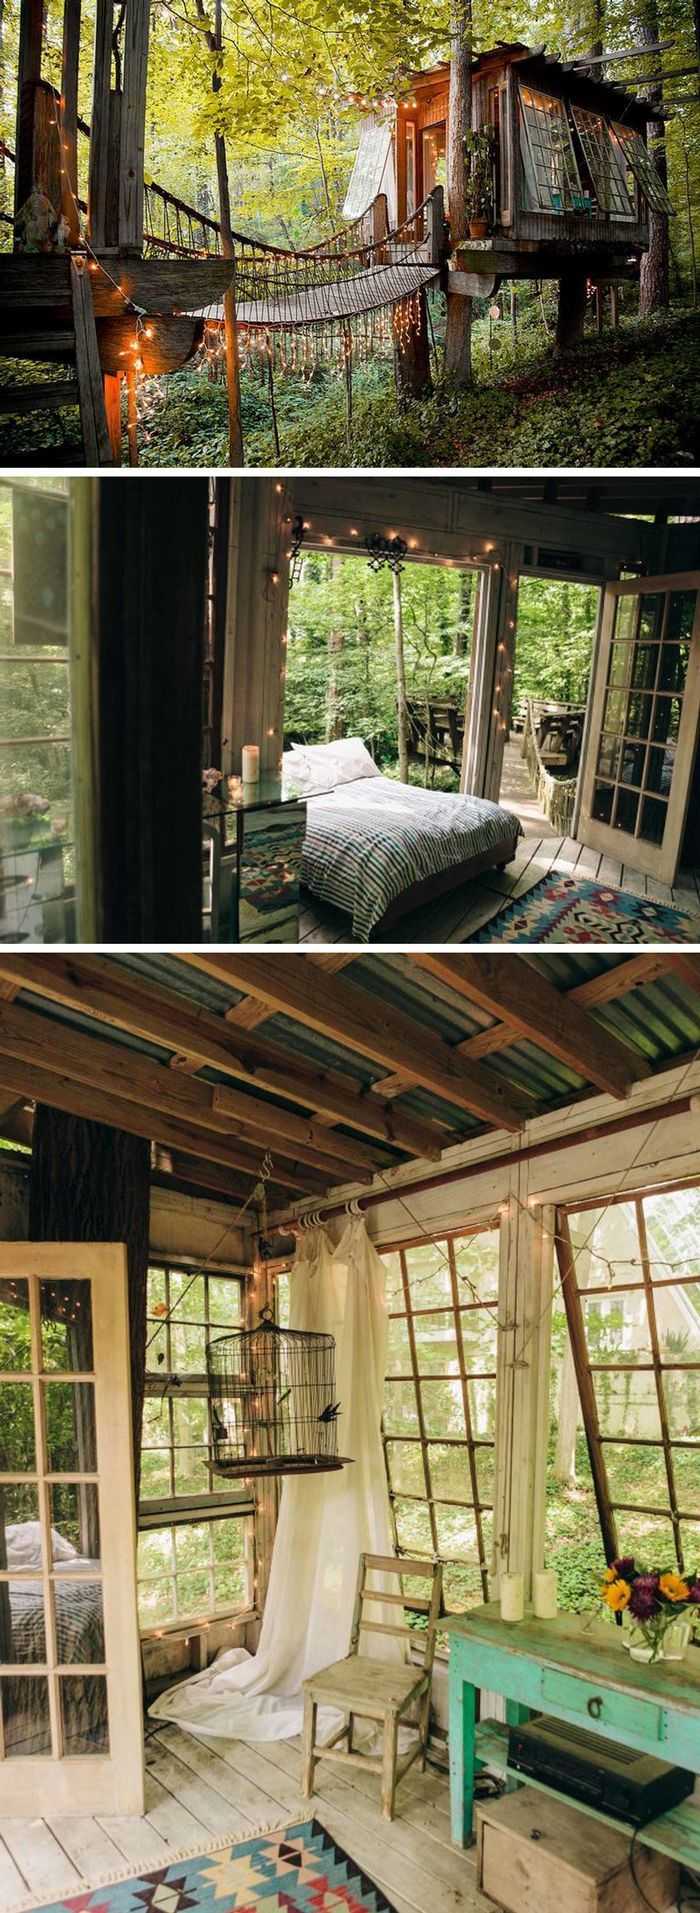 Best 25+ Treehouses ideas on Pinterest